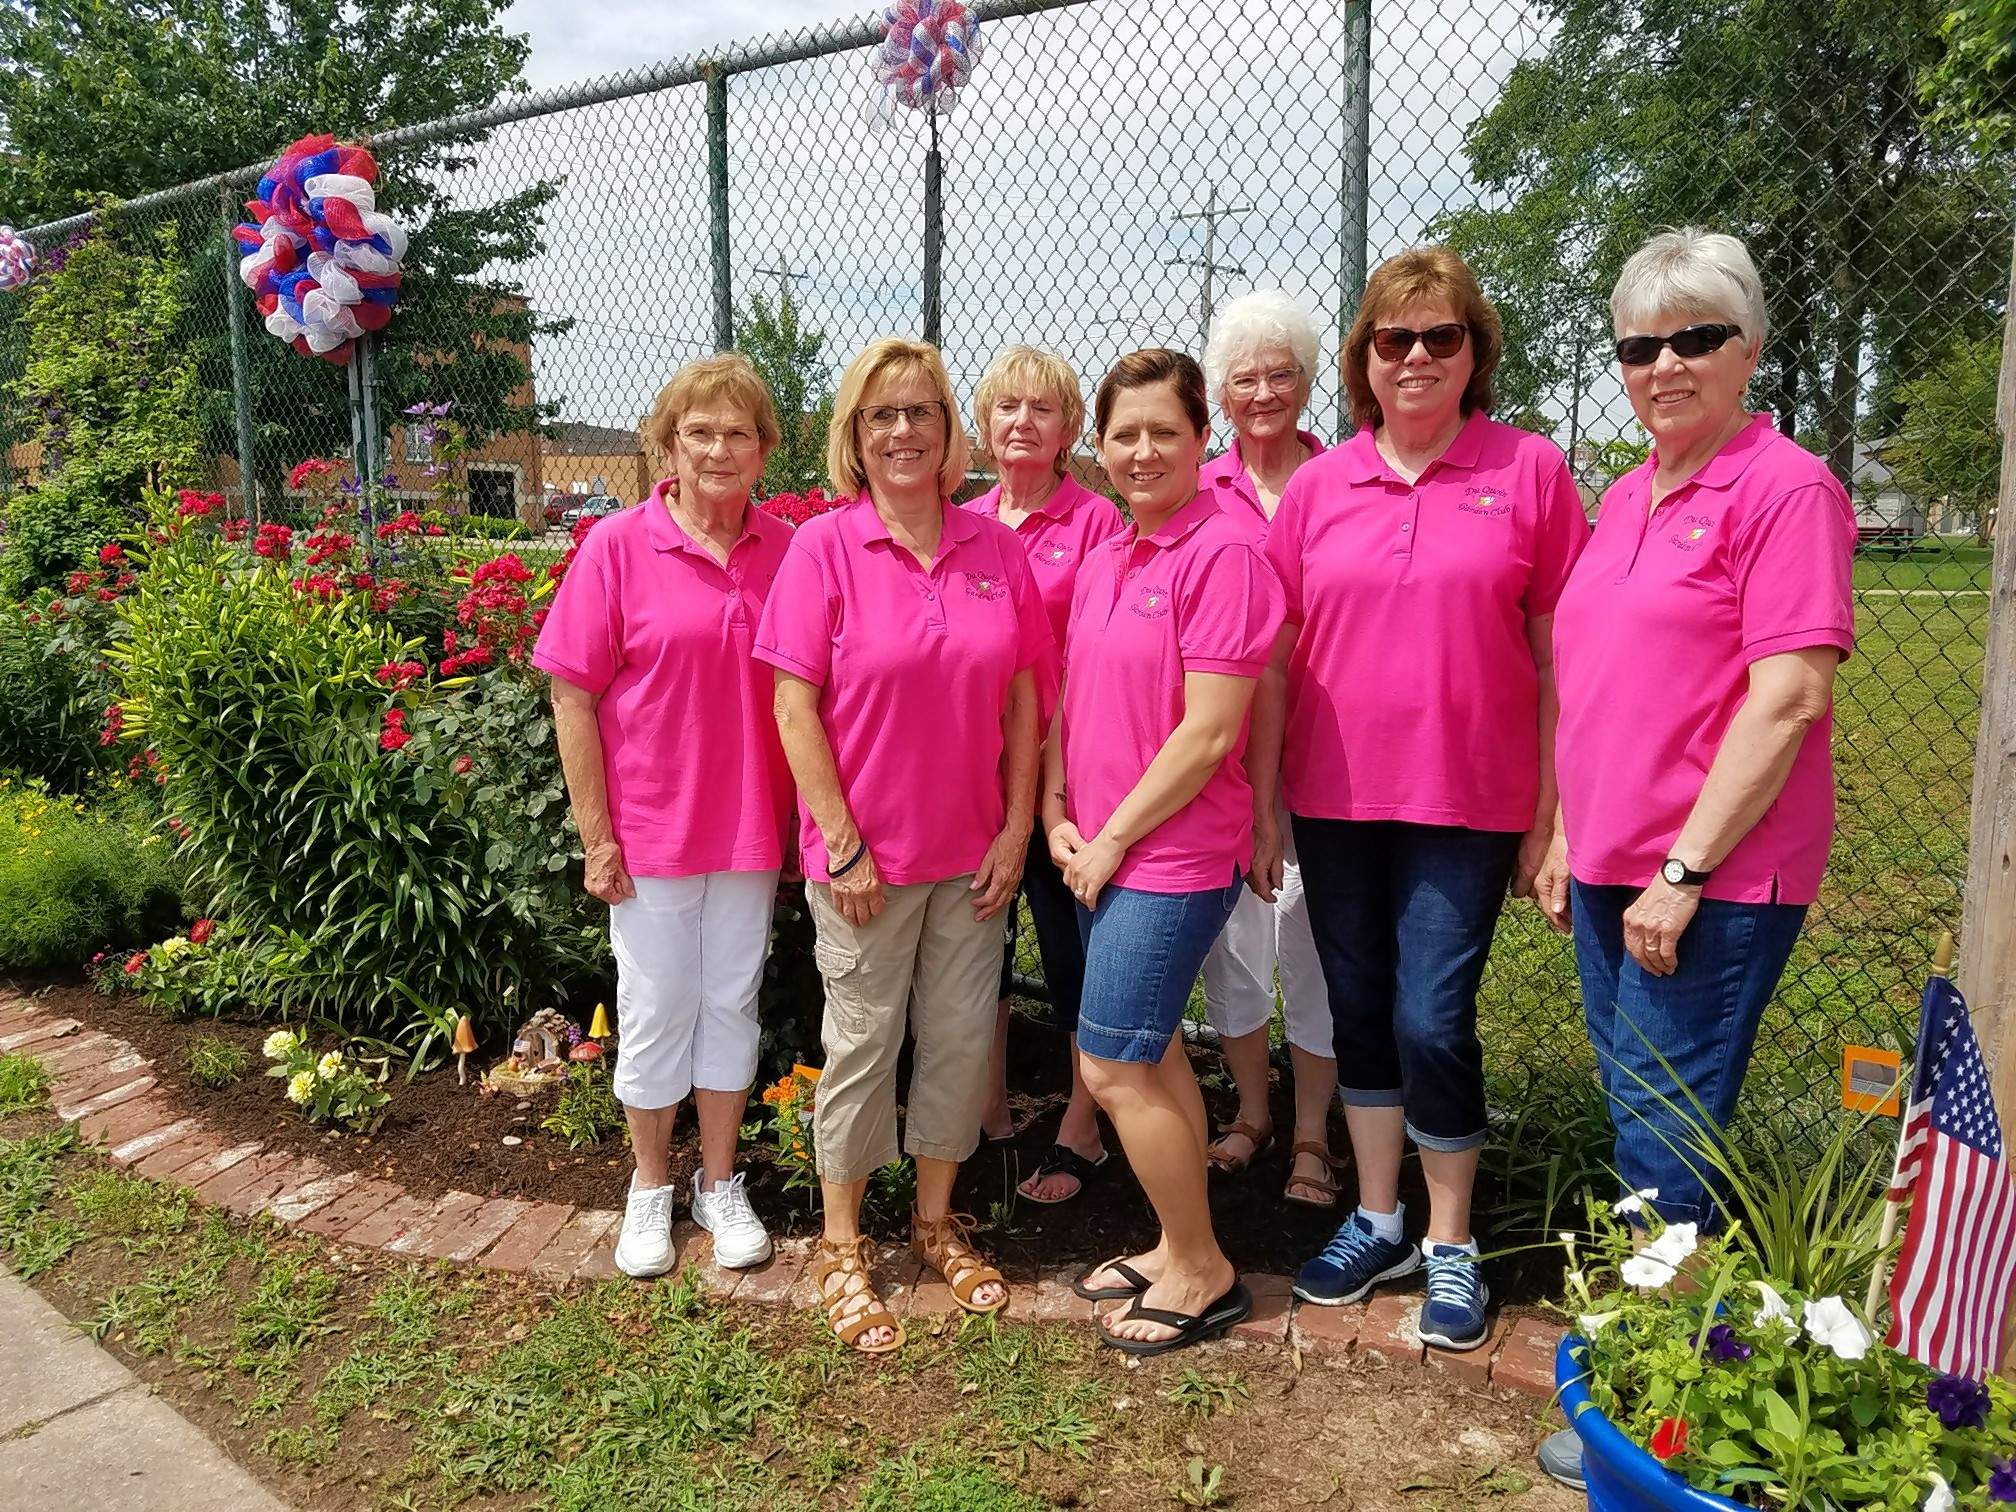 Members of the Du Quoin Garden Club were busy at the city park Saturday showcasing their gardens to the general public. Front row from left: Bonnie Wilson, Joey Harsy, Amy Williams, Mary Jane Field, and Sherry Gravot. Back row: Pam Swallers and Verna Bastien.